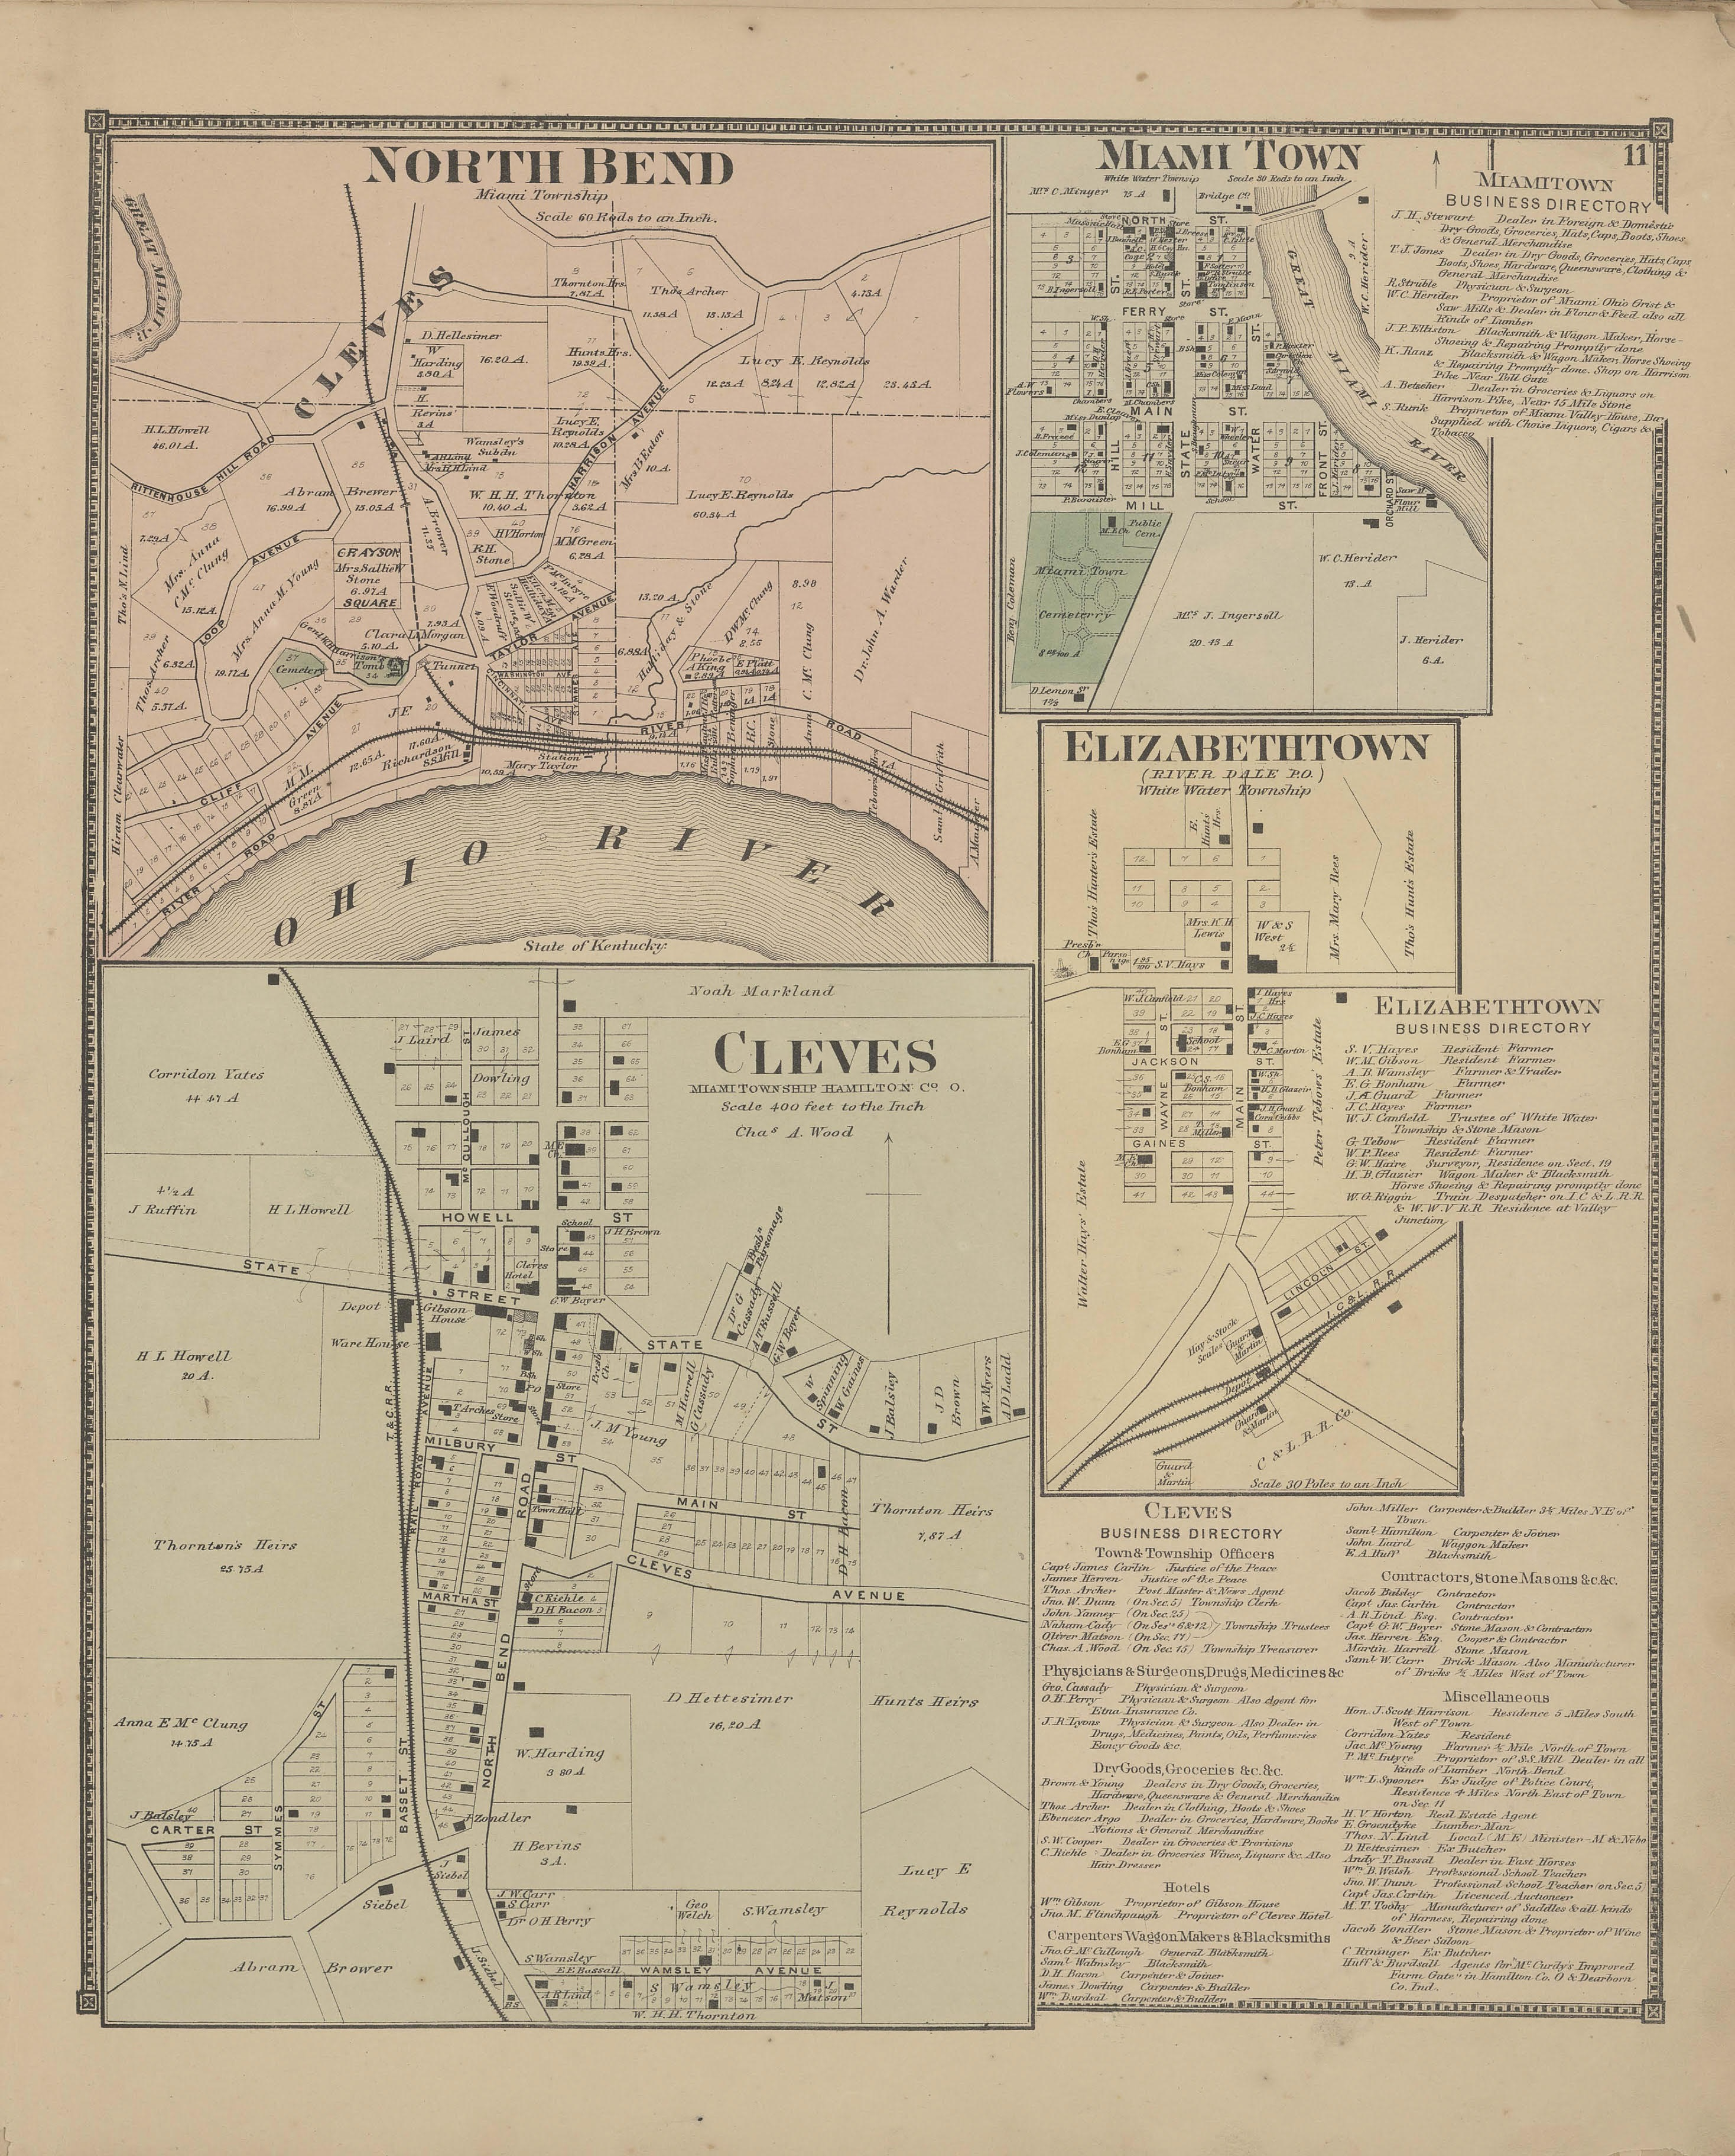 Miami Township Ohio Map.Community Village Of Cleves